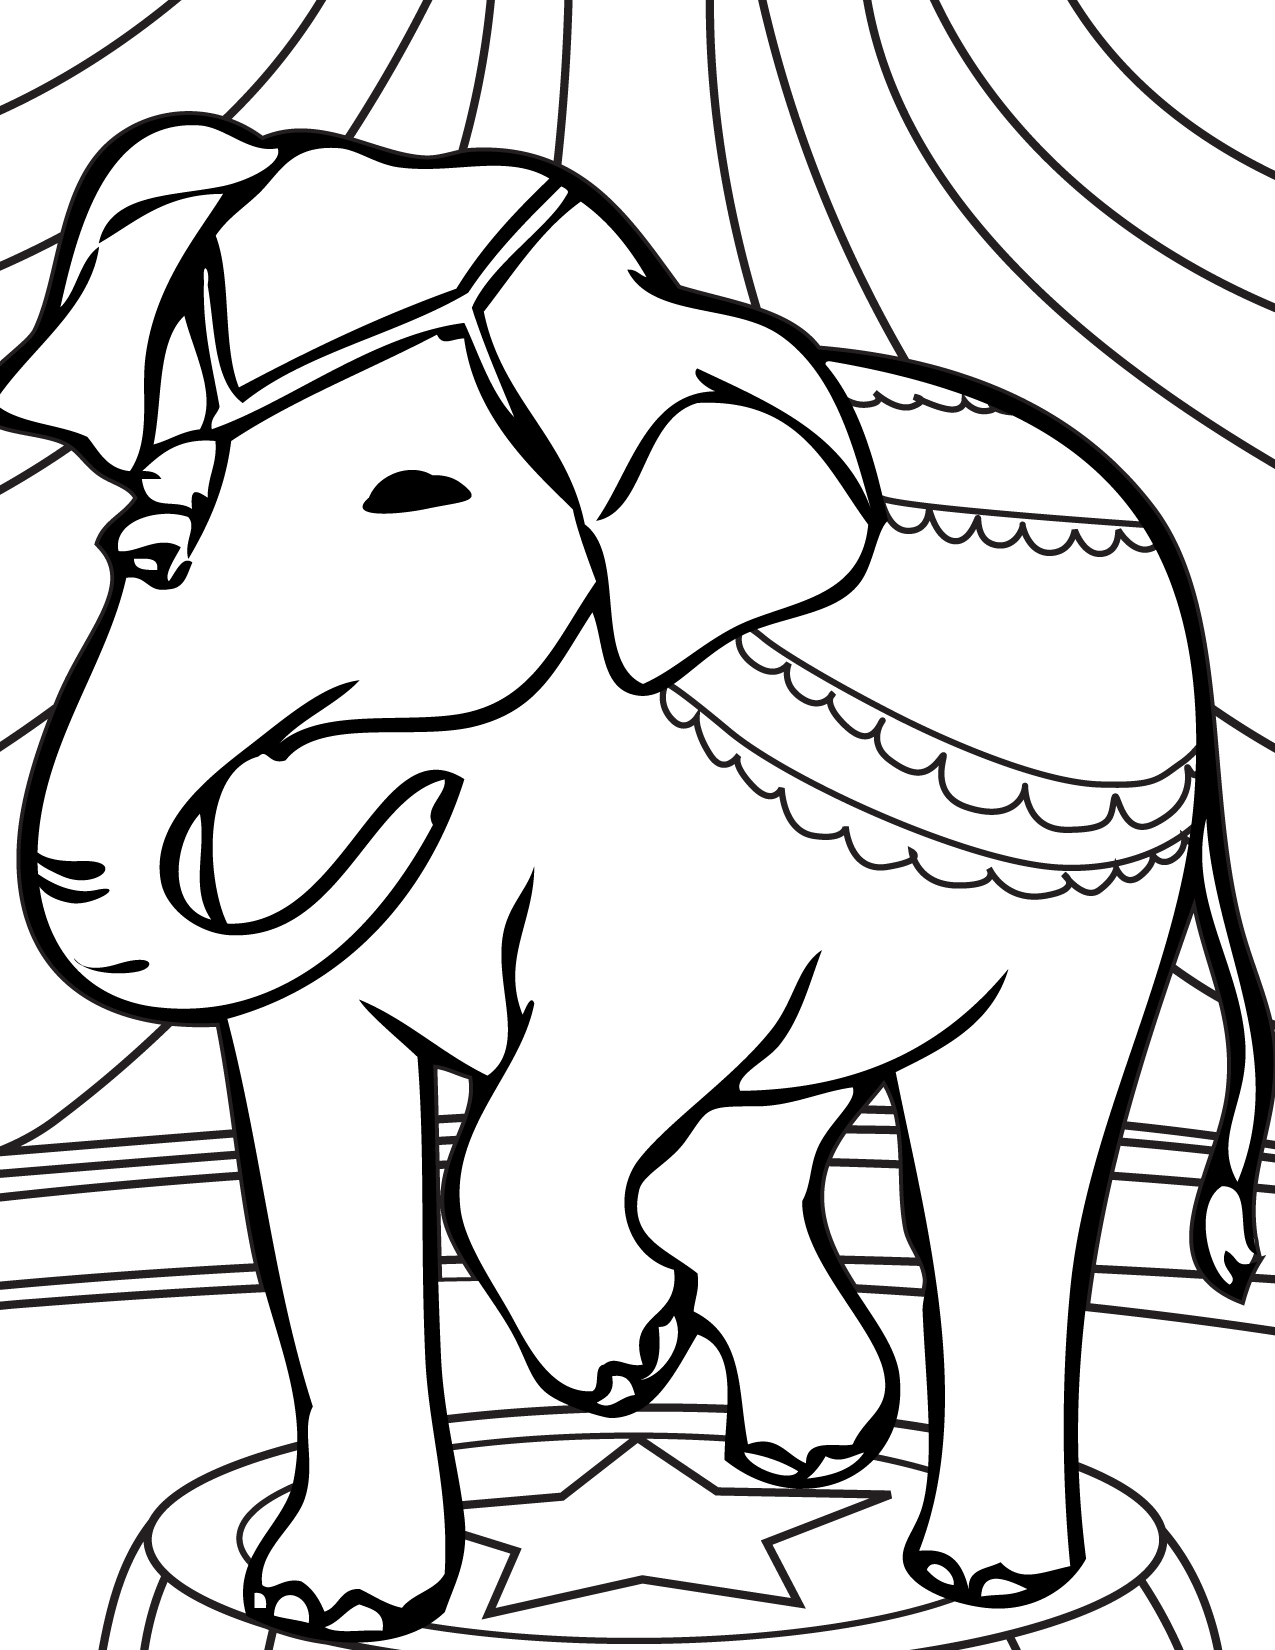 circus clown coloring pages - circus elephant coloring pages only coloring pages